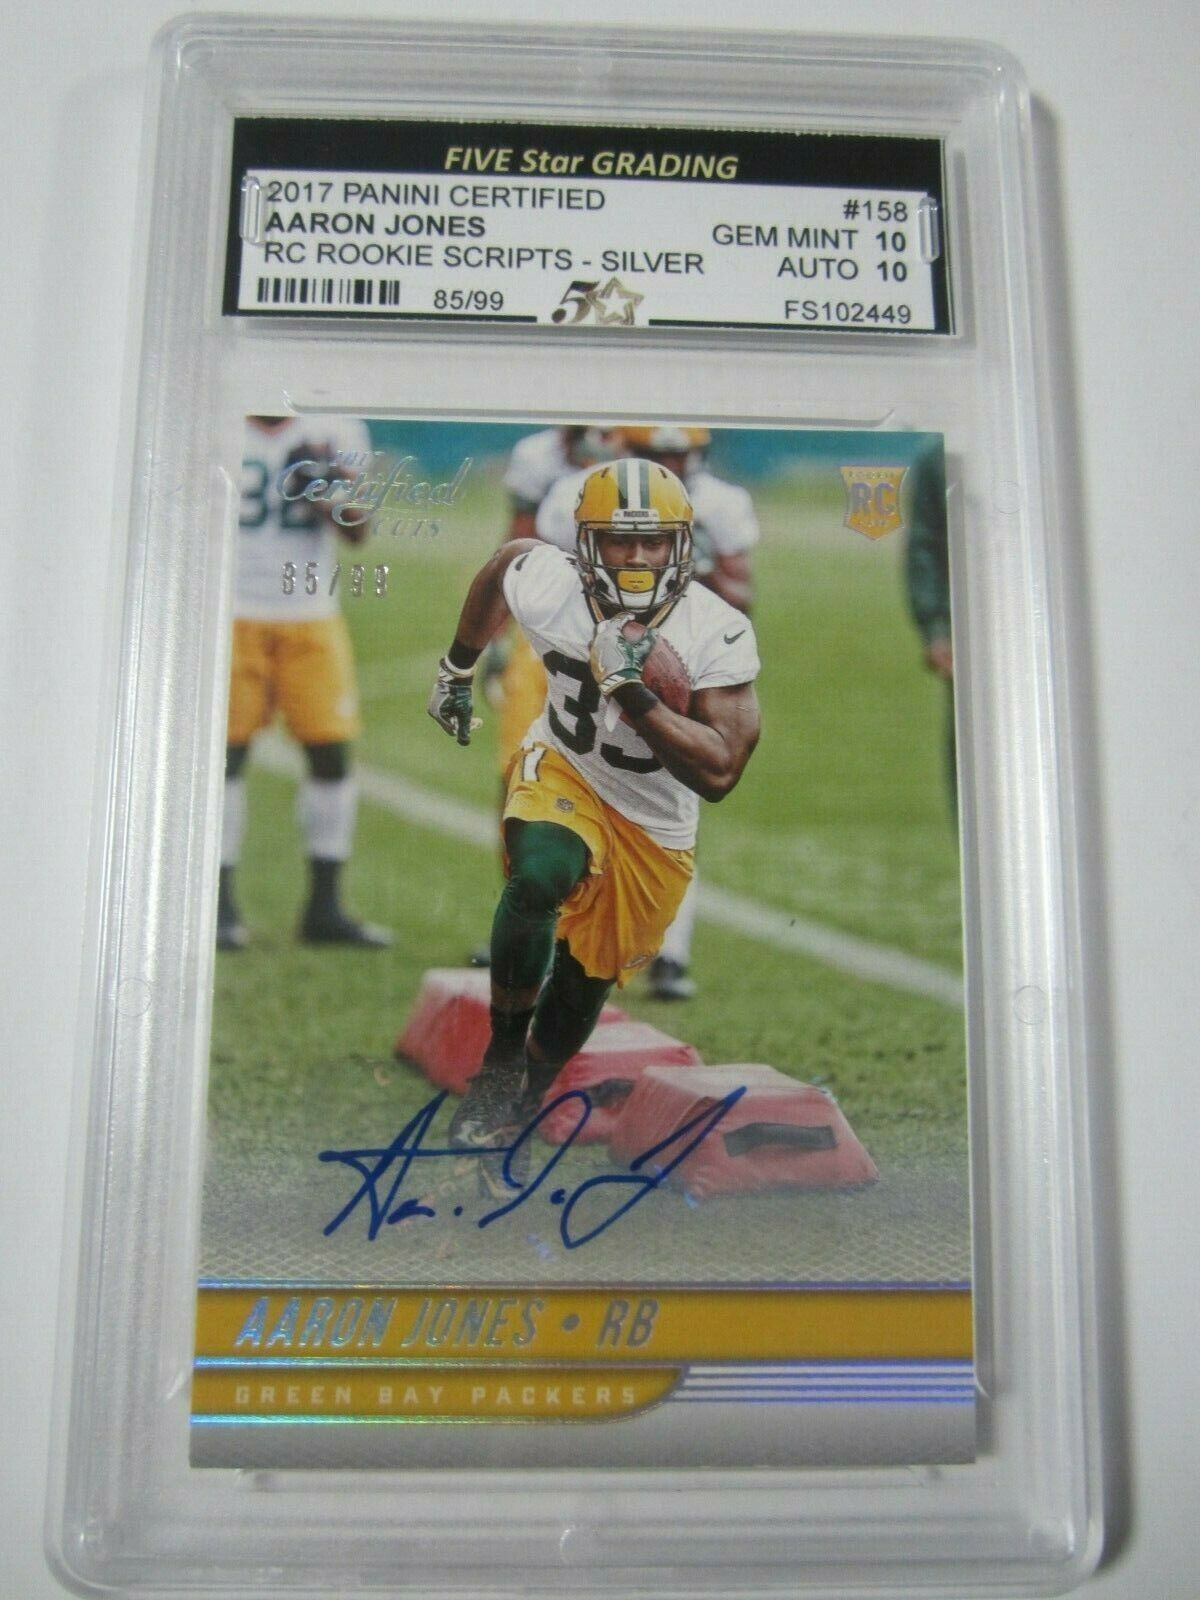 2017 Panini Certified Aaron Jones Signed Rookie Scripts Card 99 Gem Mint 10 Jones Sign Green Bay Packers Players Green Bay